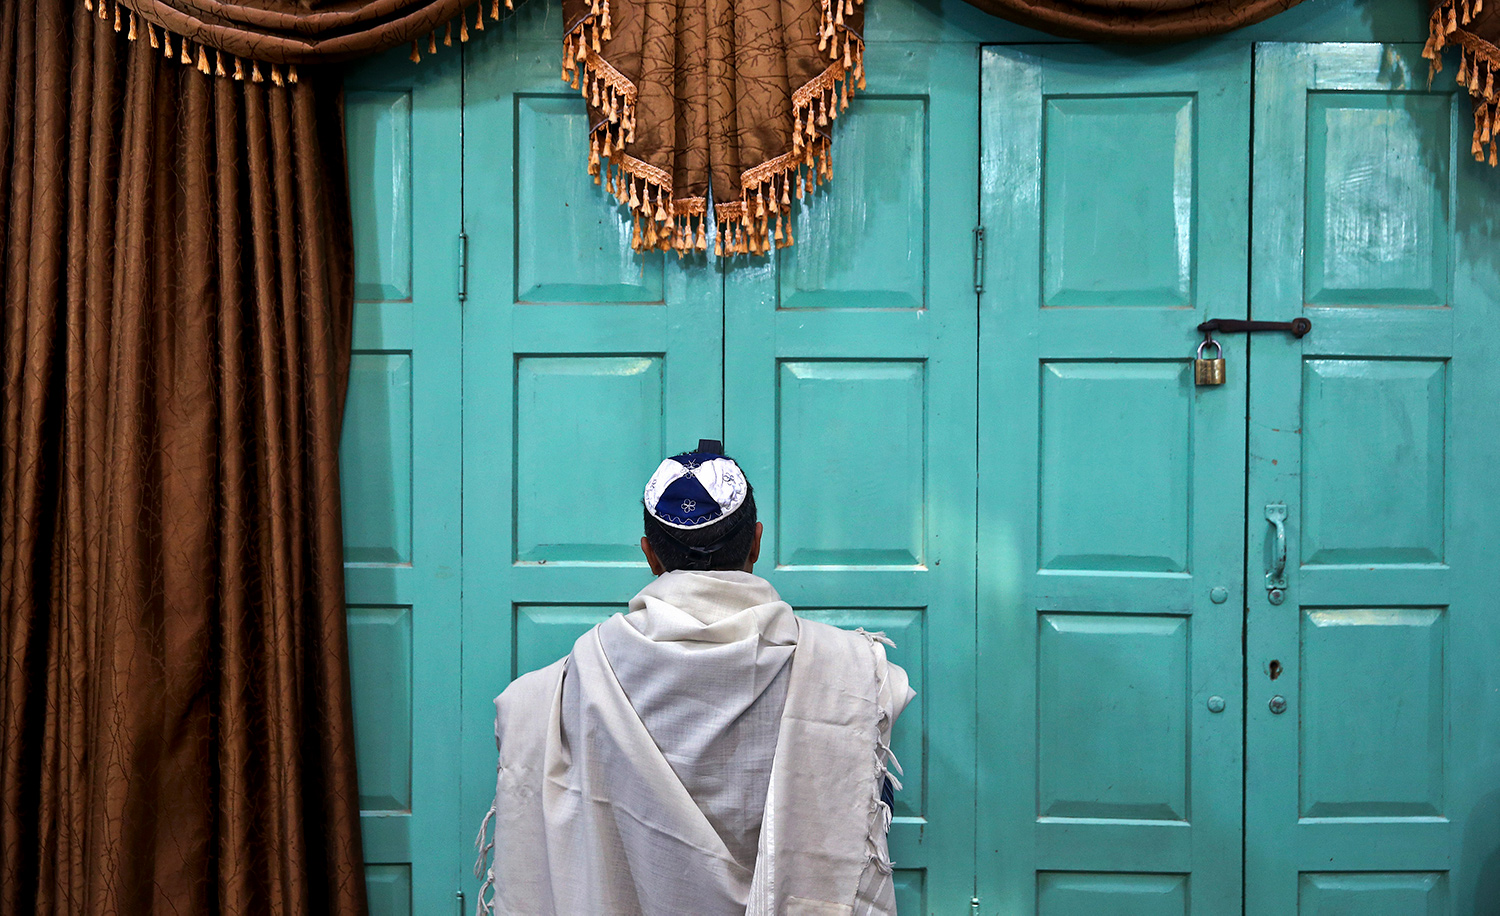 An Iranian Jewish man prays at the Molla Agha Baba Synagogue in the city of Yazd 420 miles south of capital Tehran. AP Photo/Ebrahim Noroozi.